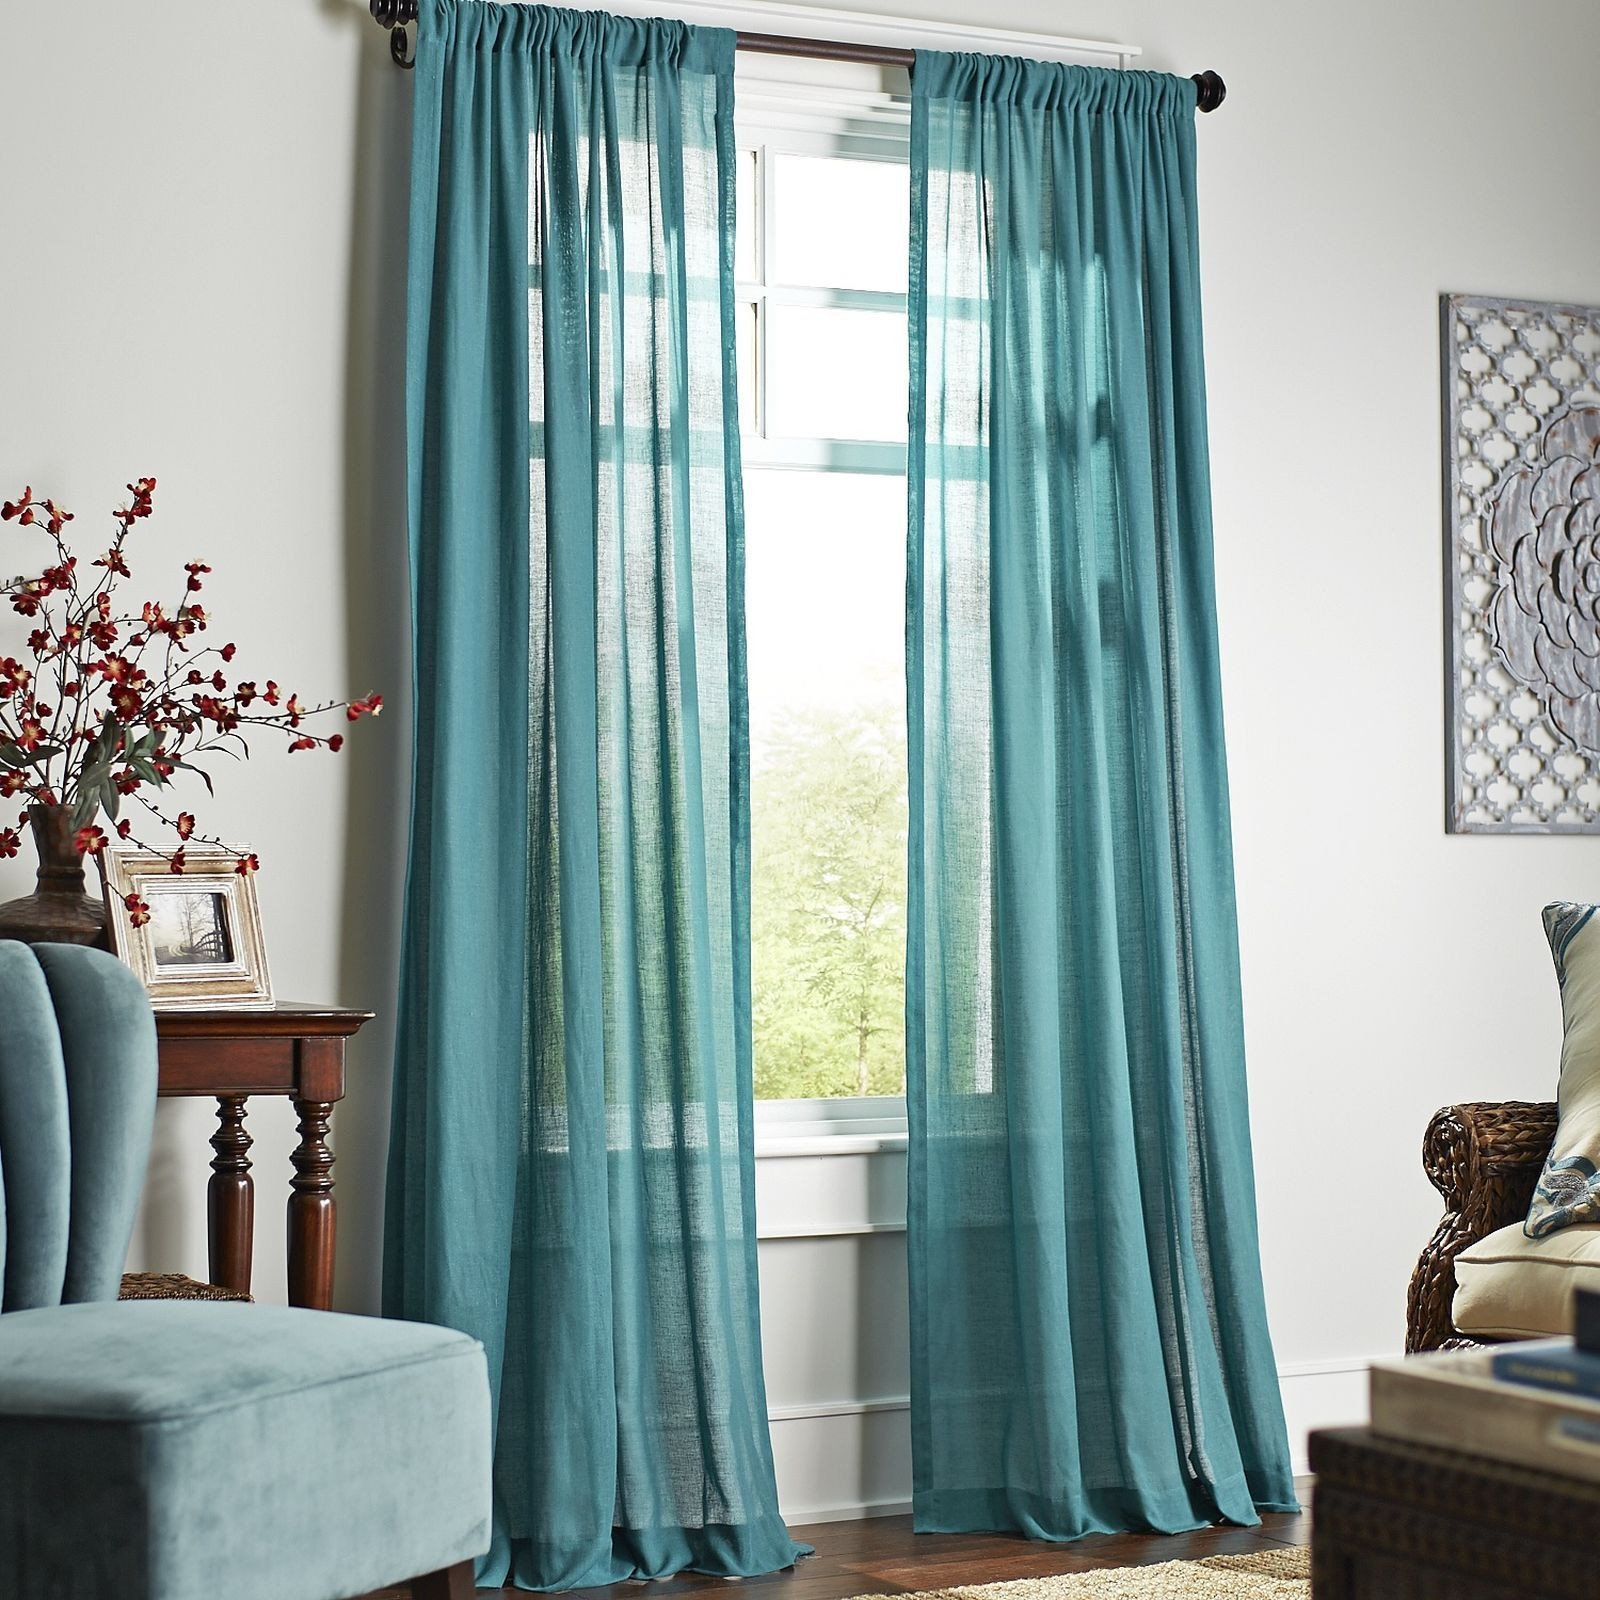 Best Curtains for Bedroom Lovely Quinn Sheer Curtain Teal Pier 1 Imports